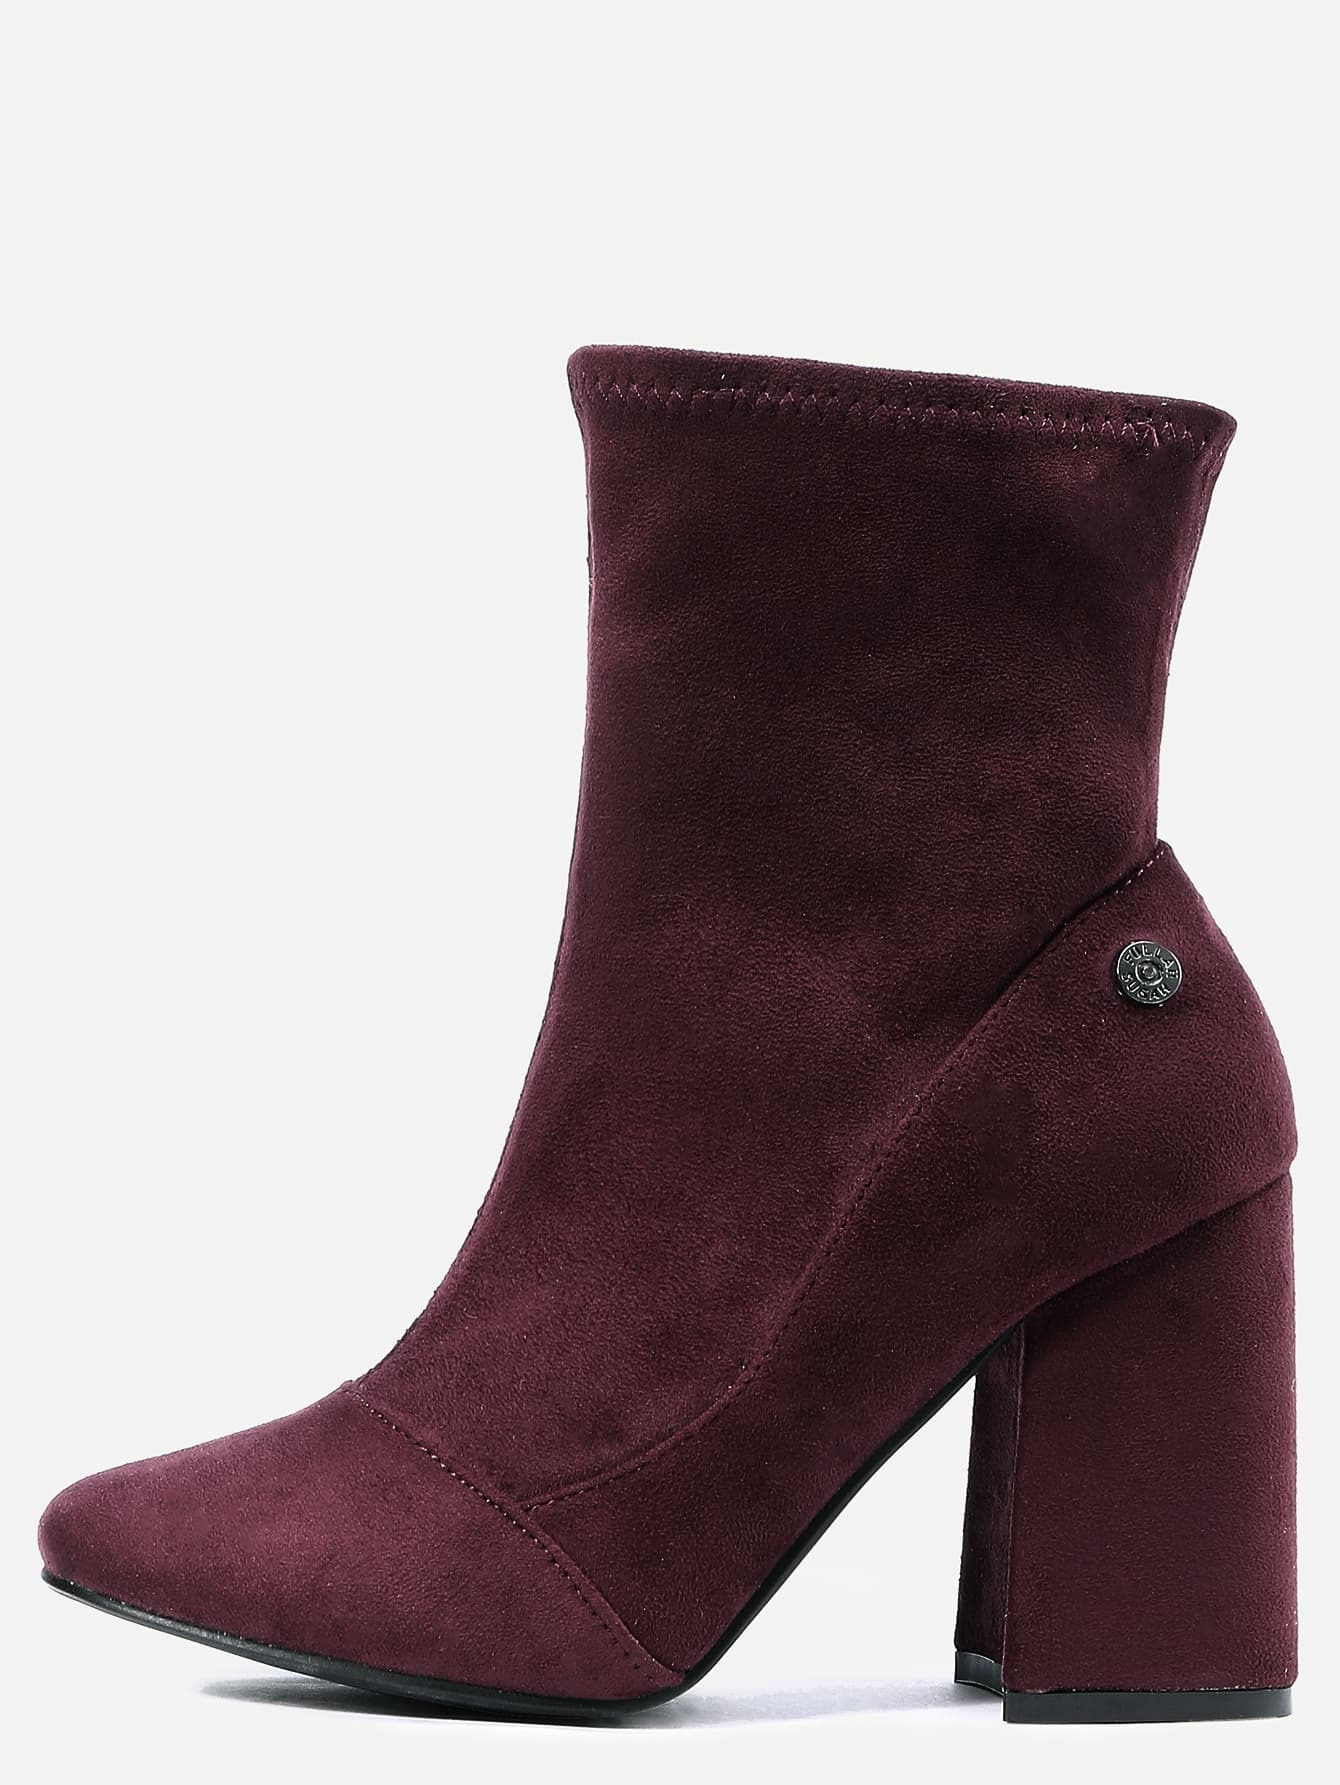 burgundy suede point toe high heel boots